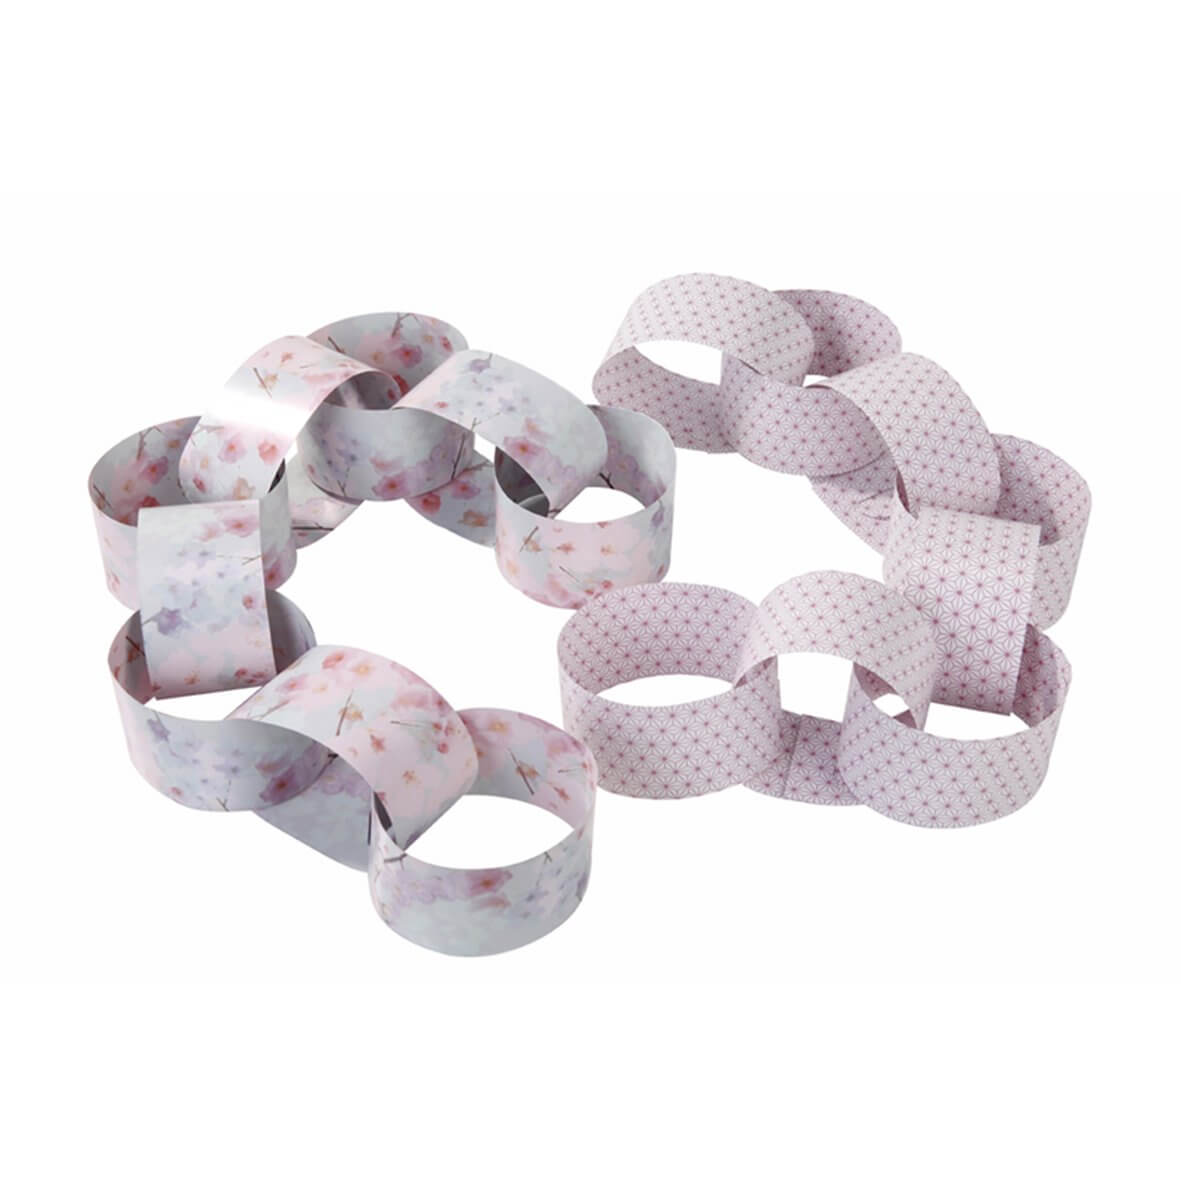 Giant Paper Chain Kit